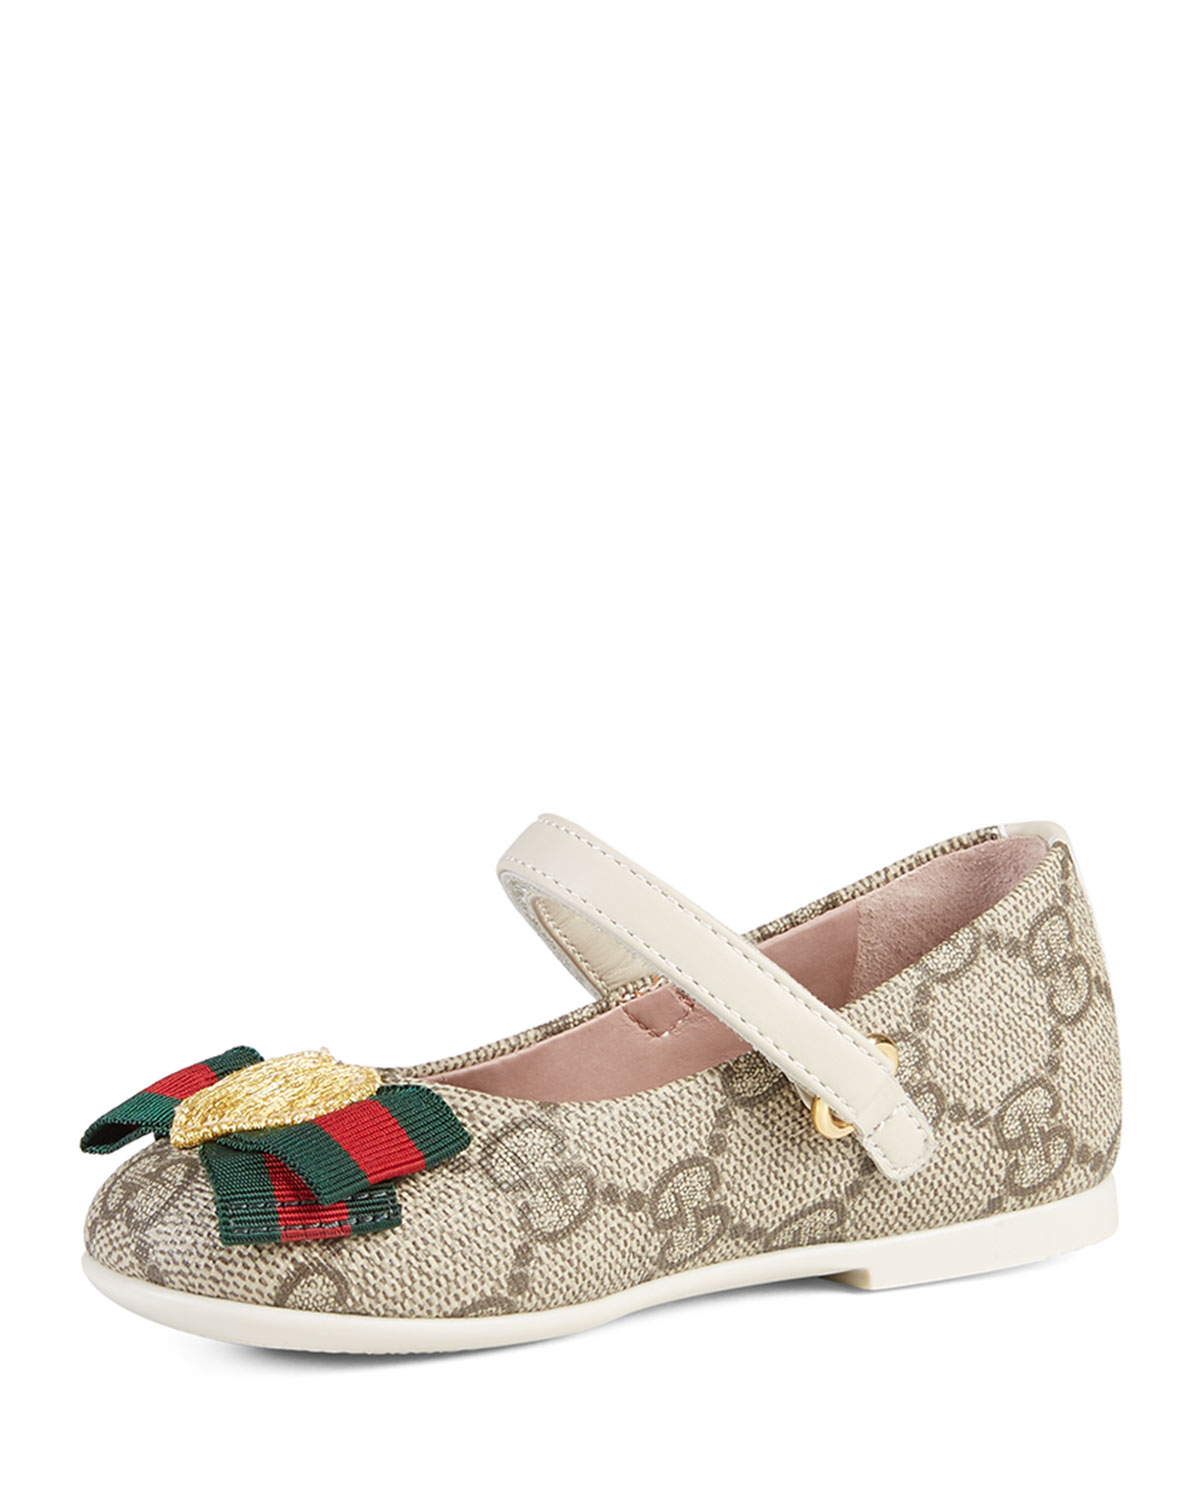 c40b23ec99656f Gucci GG Supreme Heart Mary Jane Flat